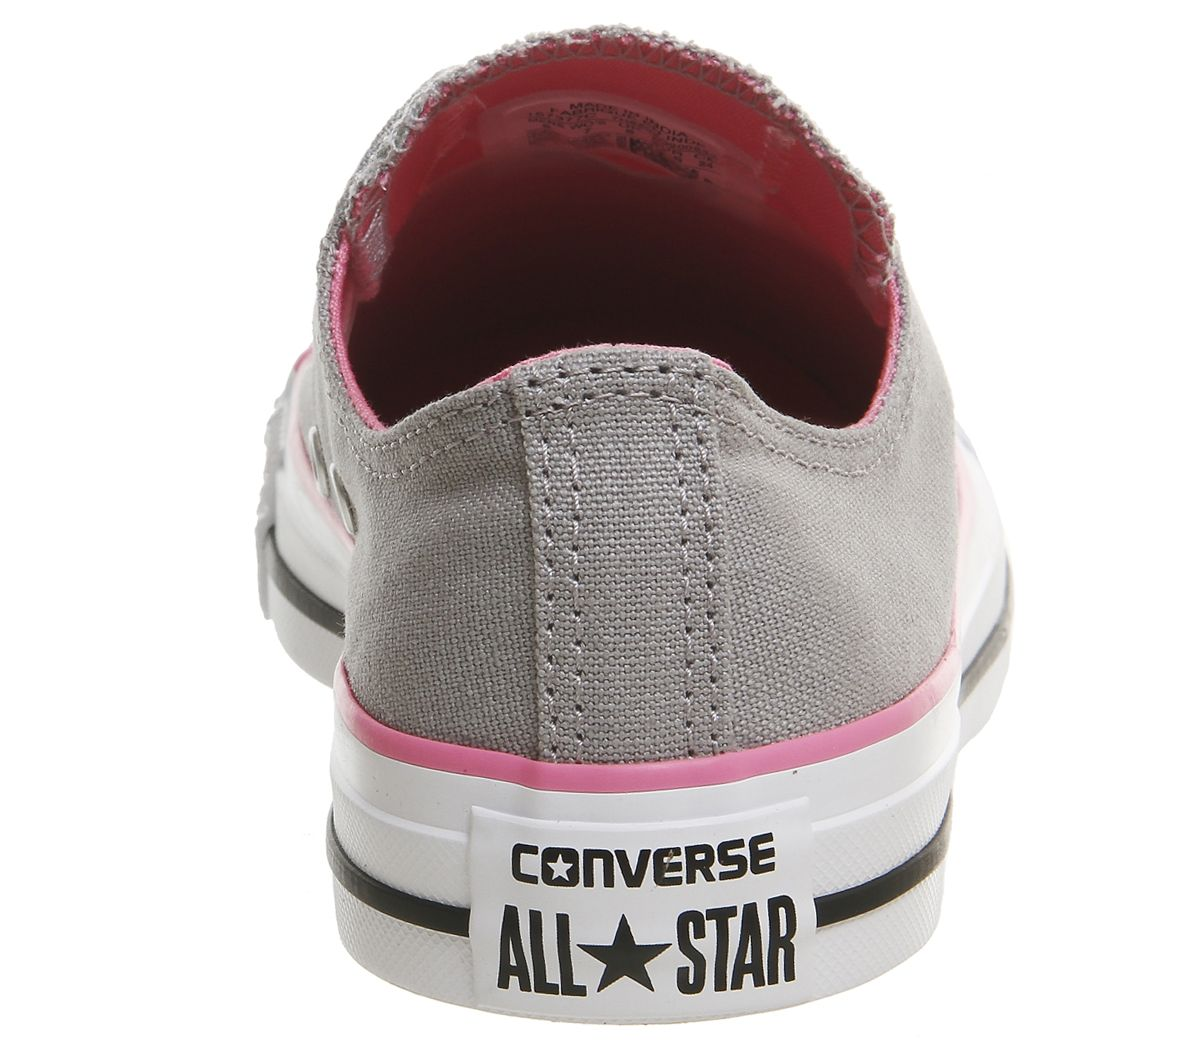 d59edf3f01d5 Sentinel Womens Converse Converse All Star Low Trainers Grey Pink Trainers  Shoes